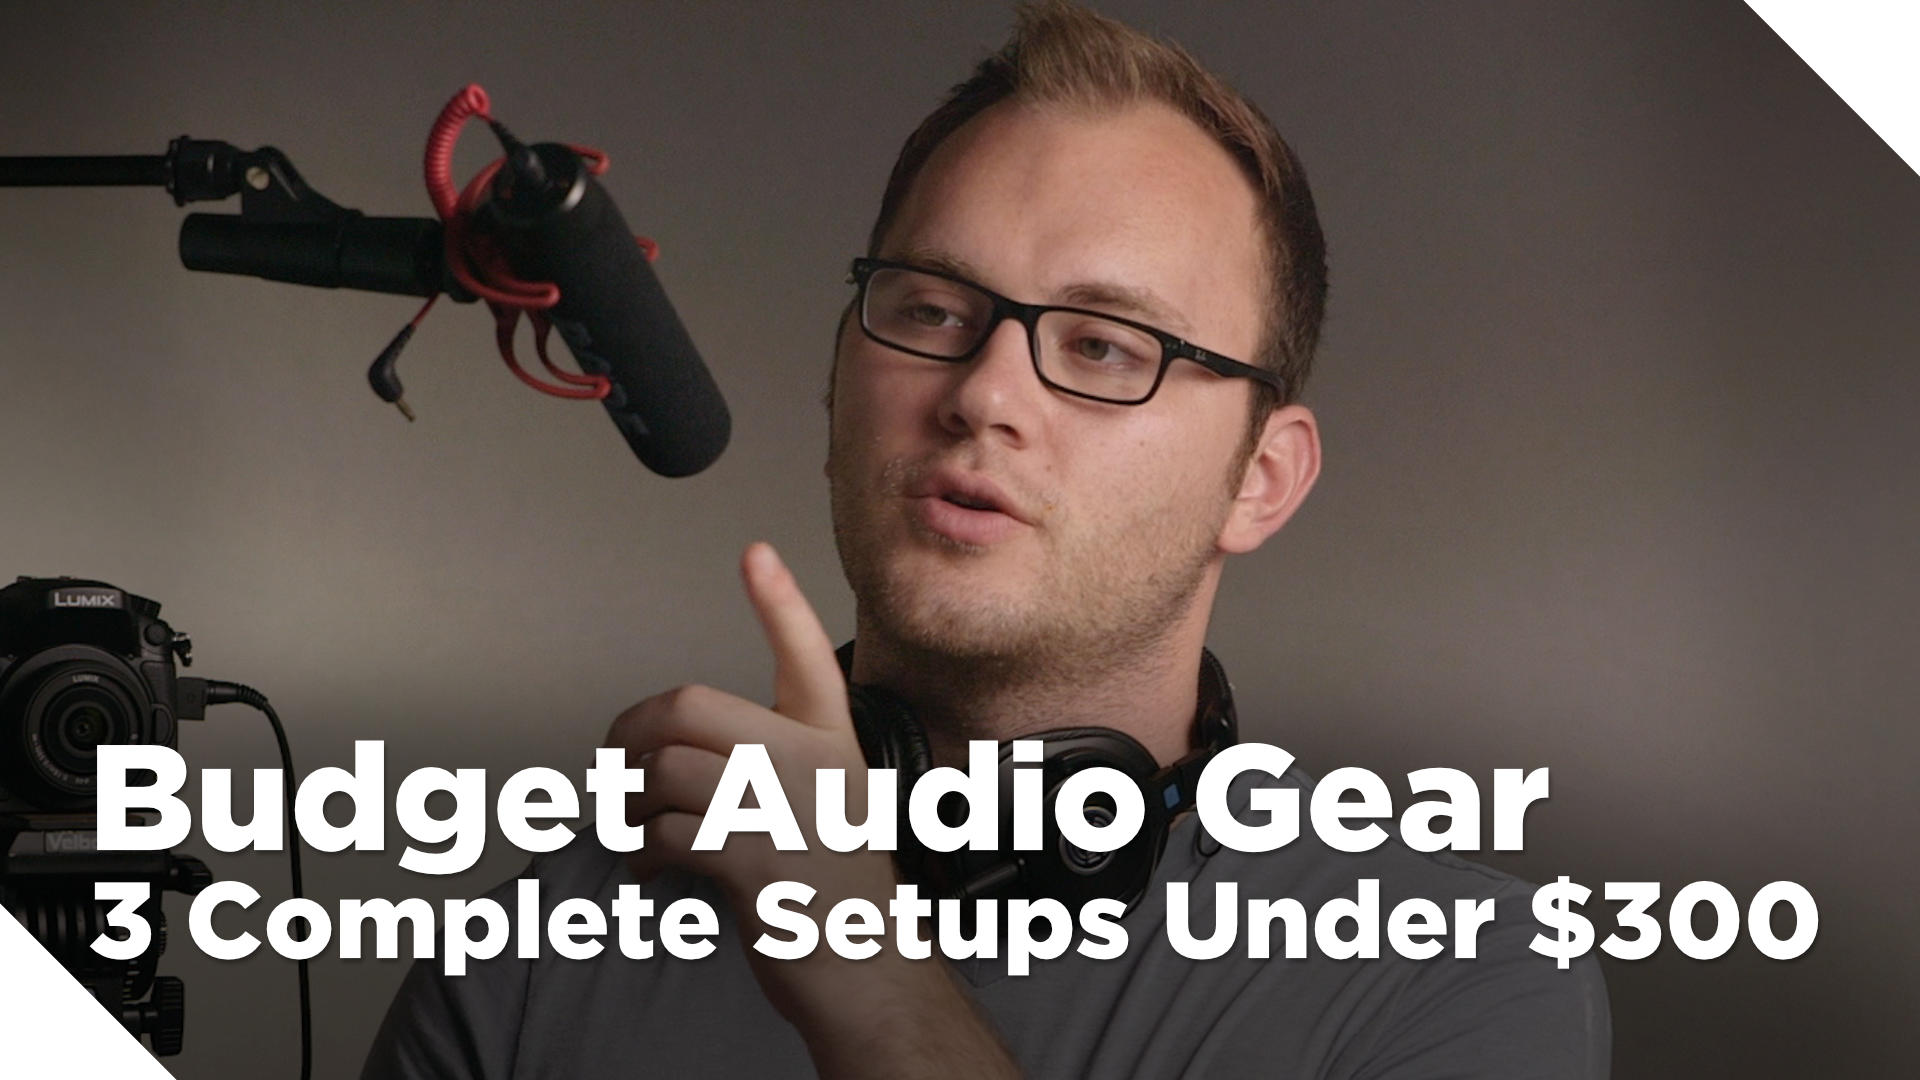 3 Complete Budget Audio Setups Under $300